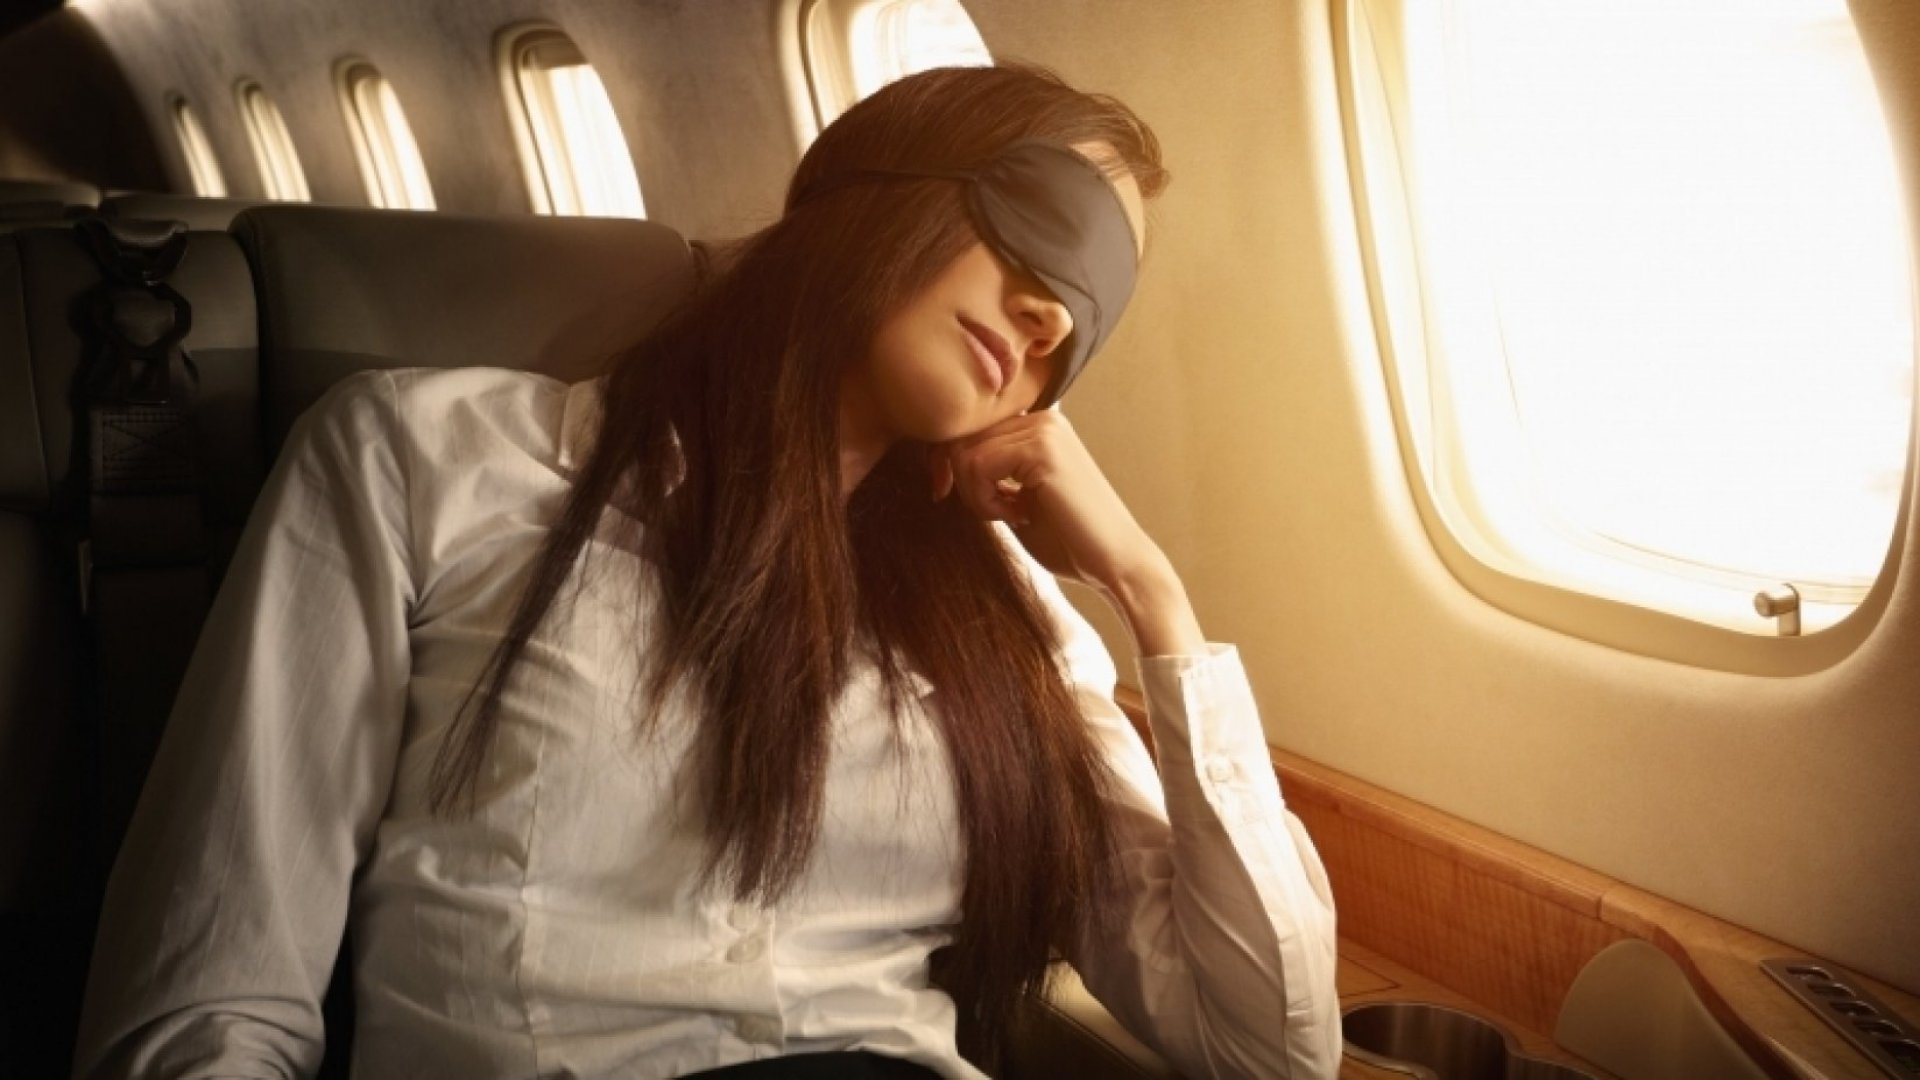 How to Stay Comfortable While Traveling in Economy